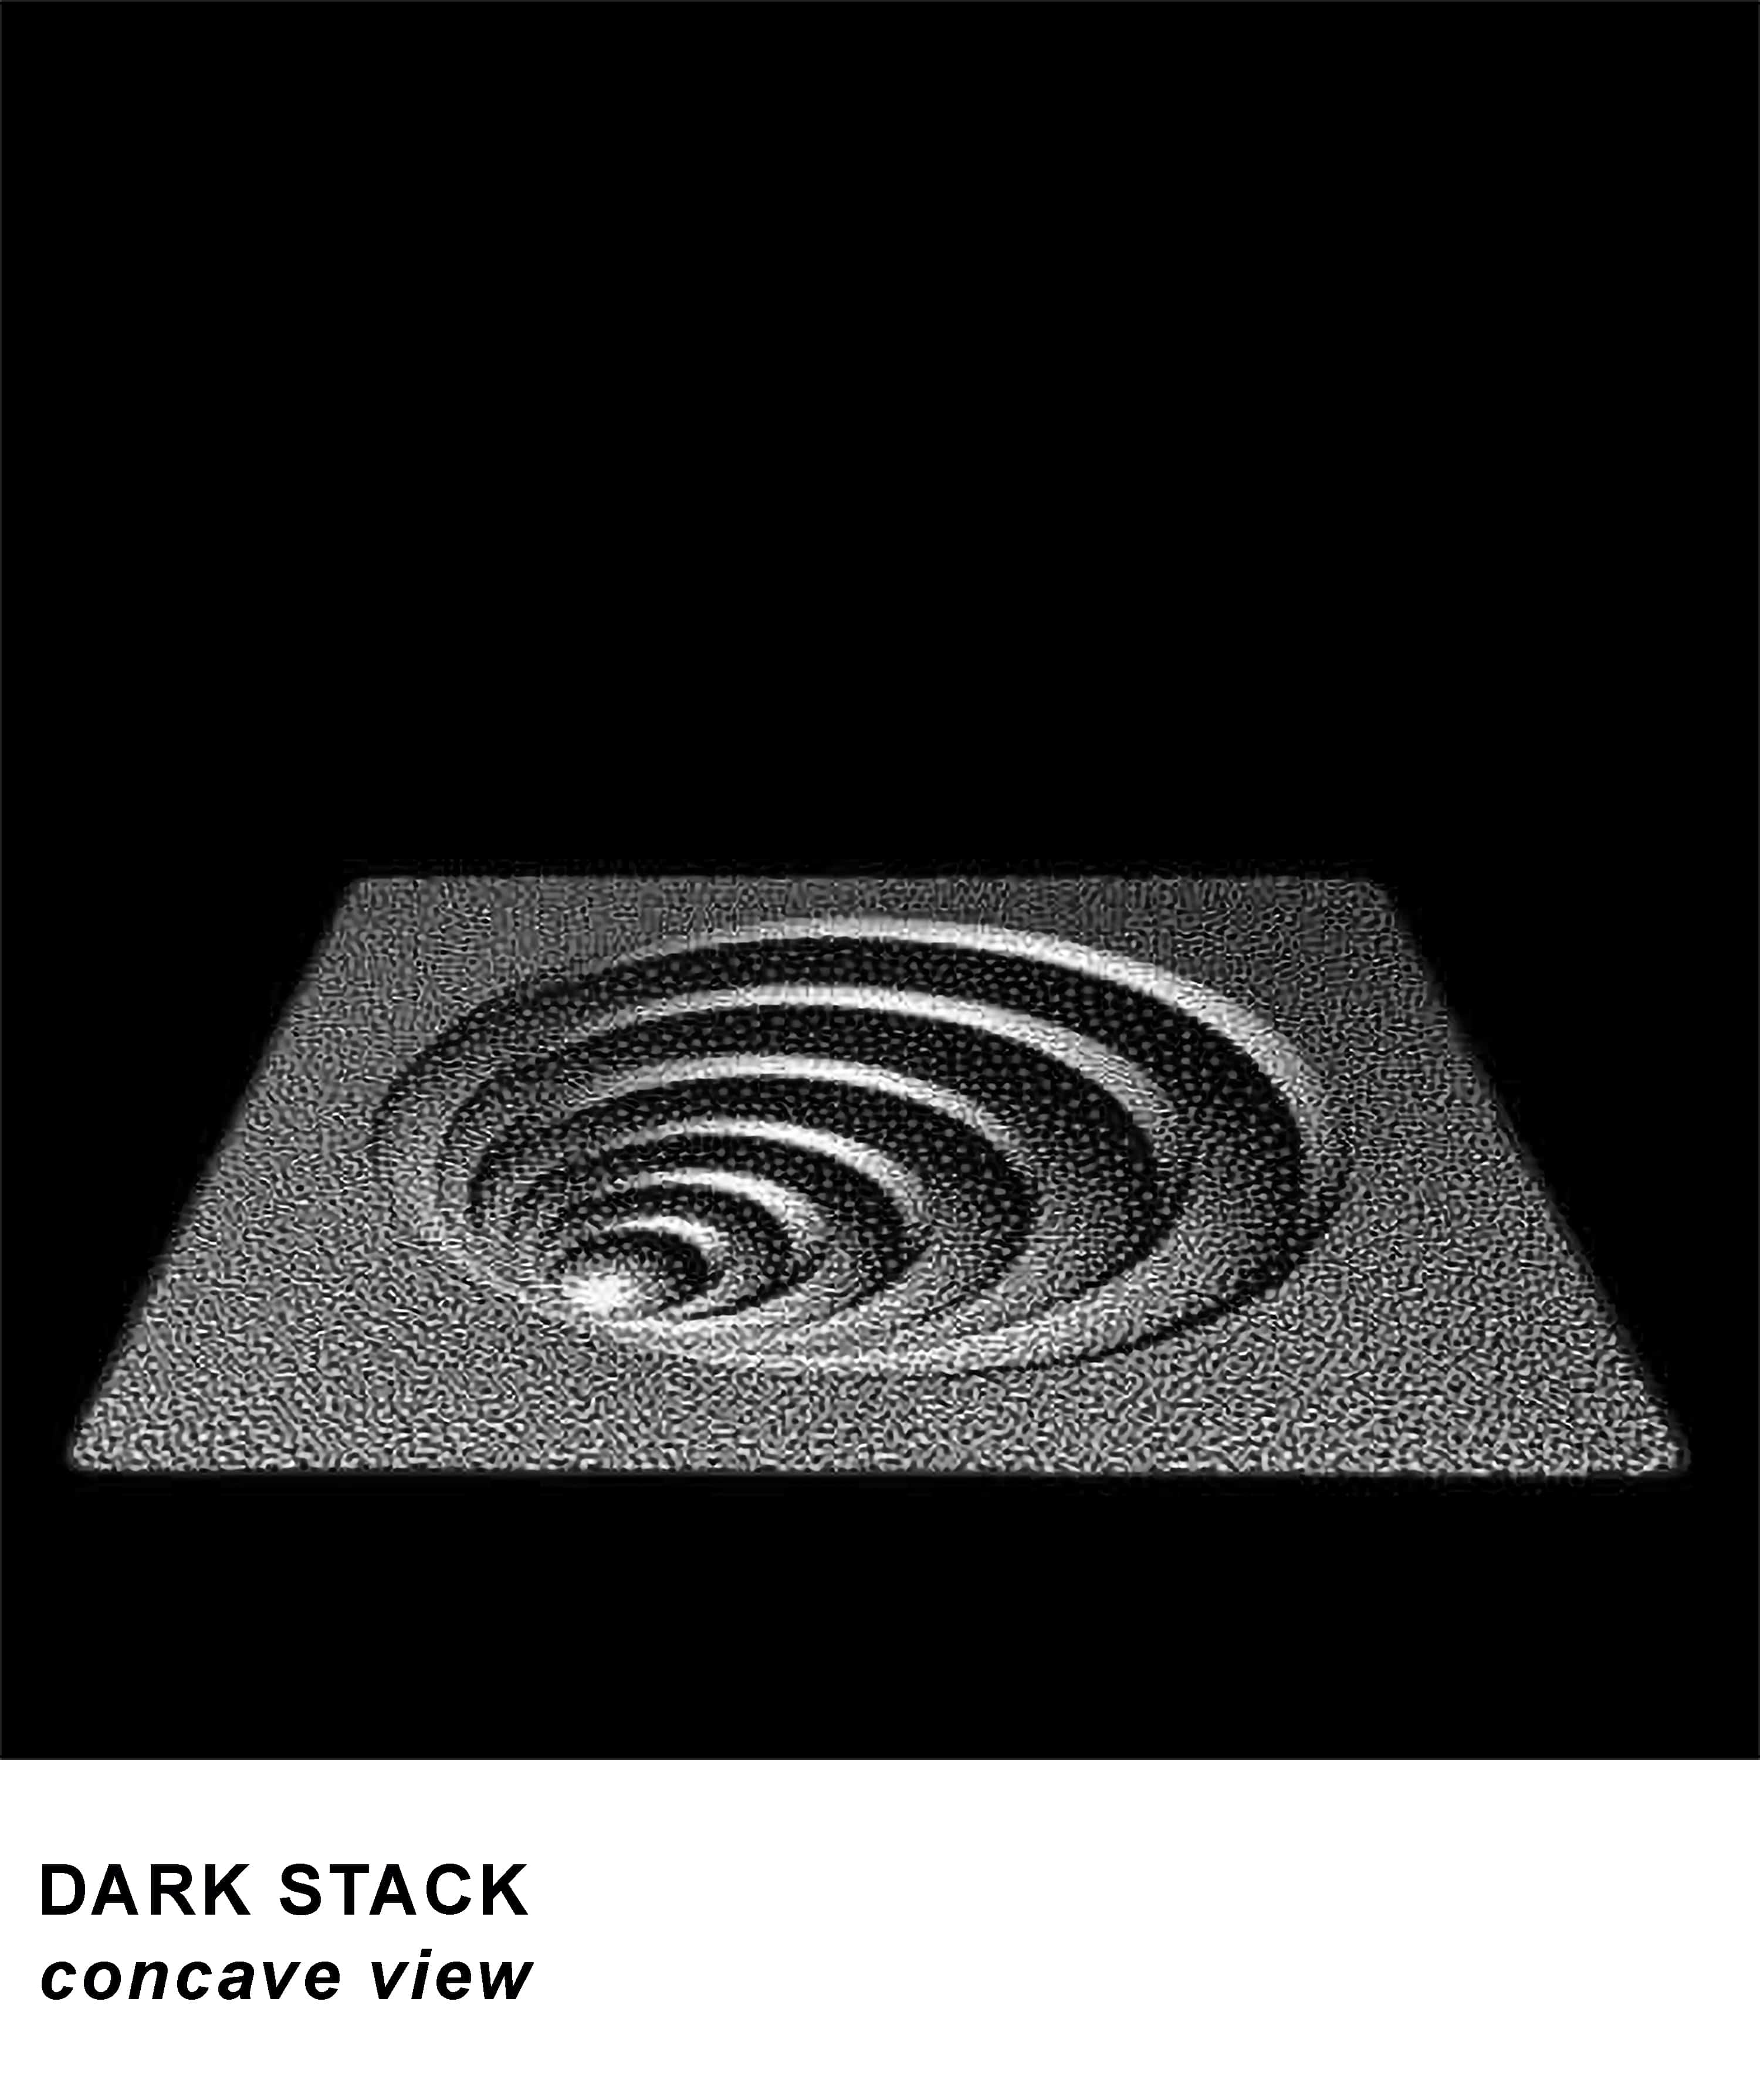 DARK STACK concave template